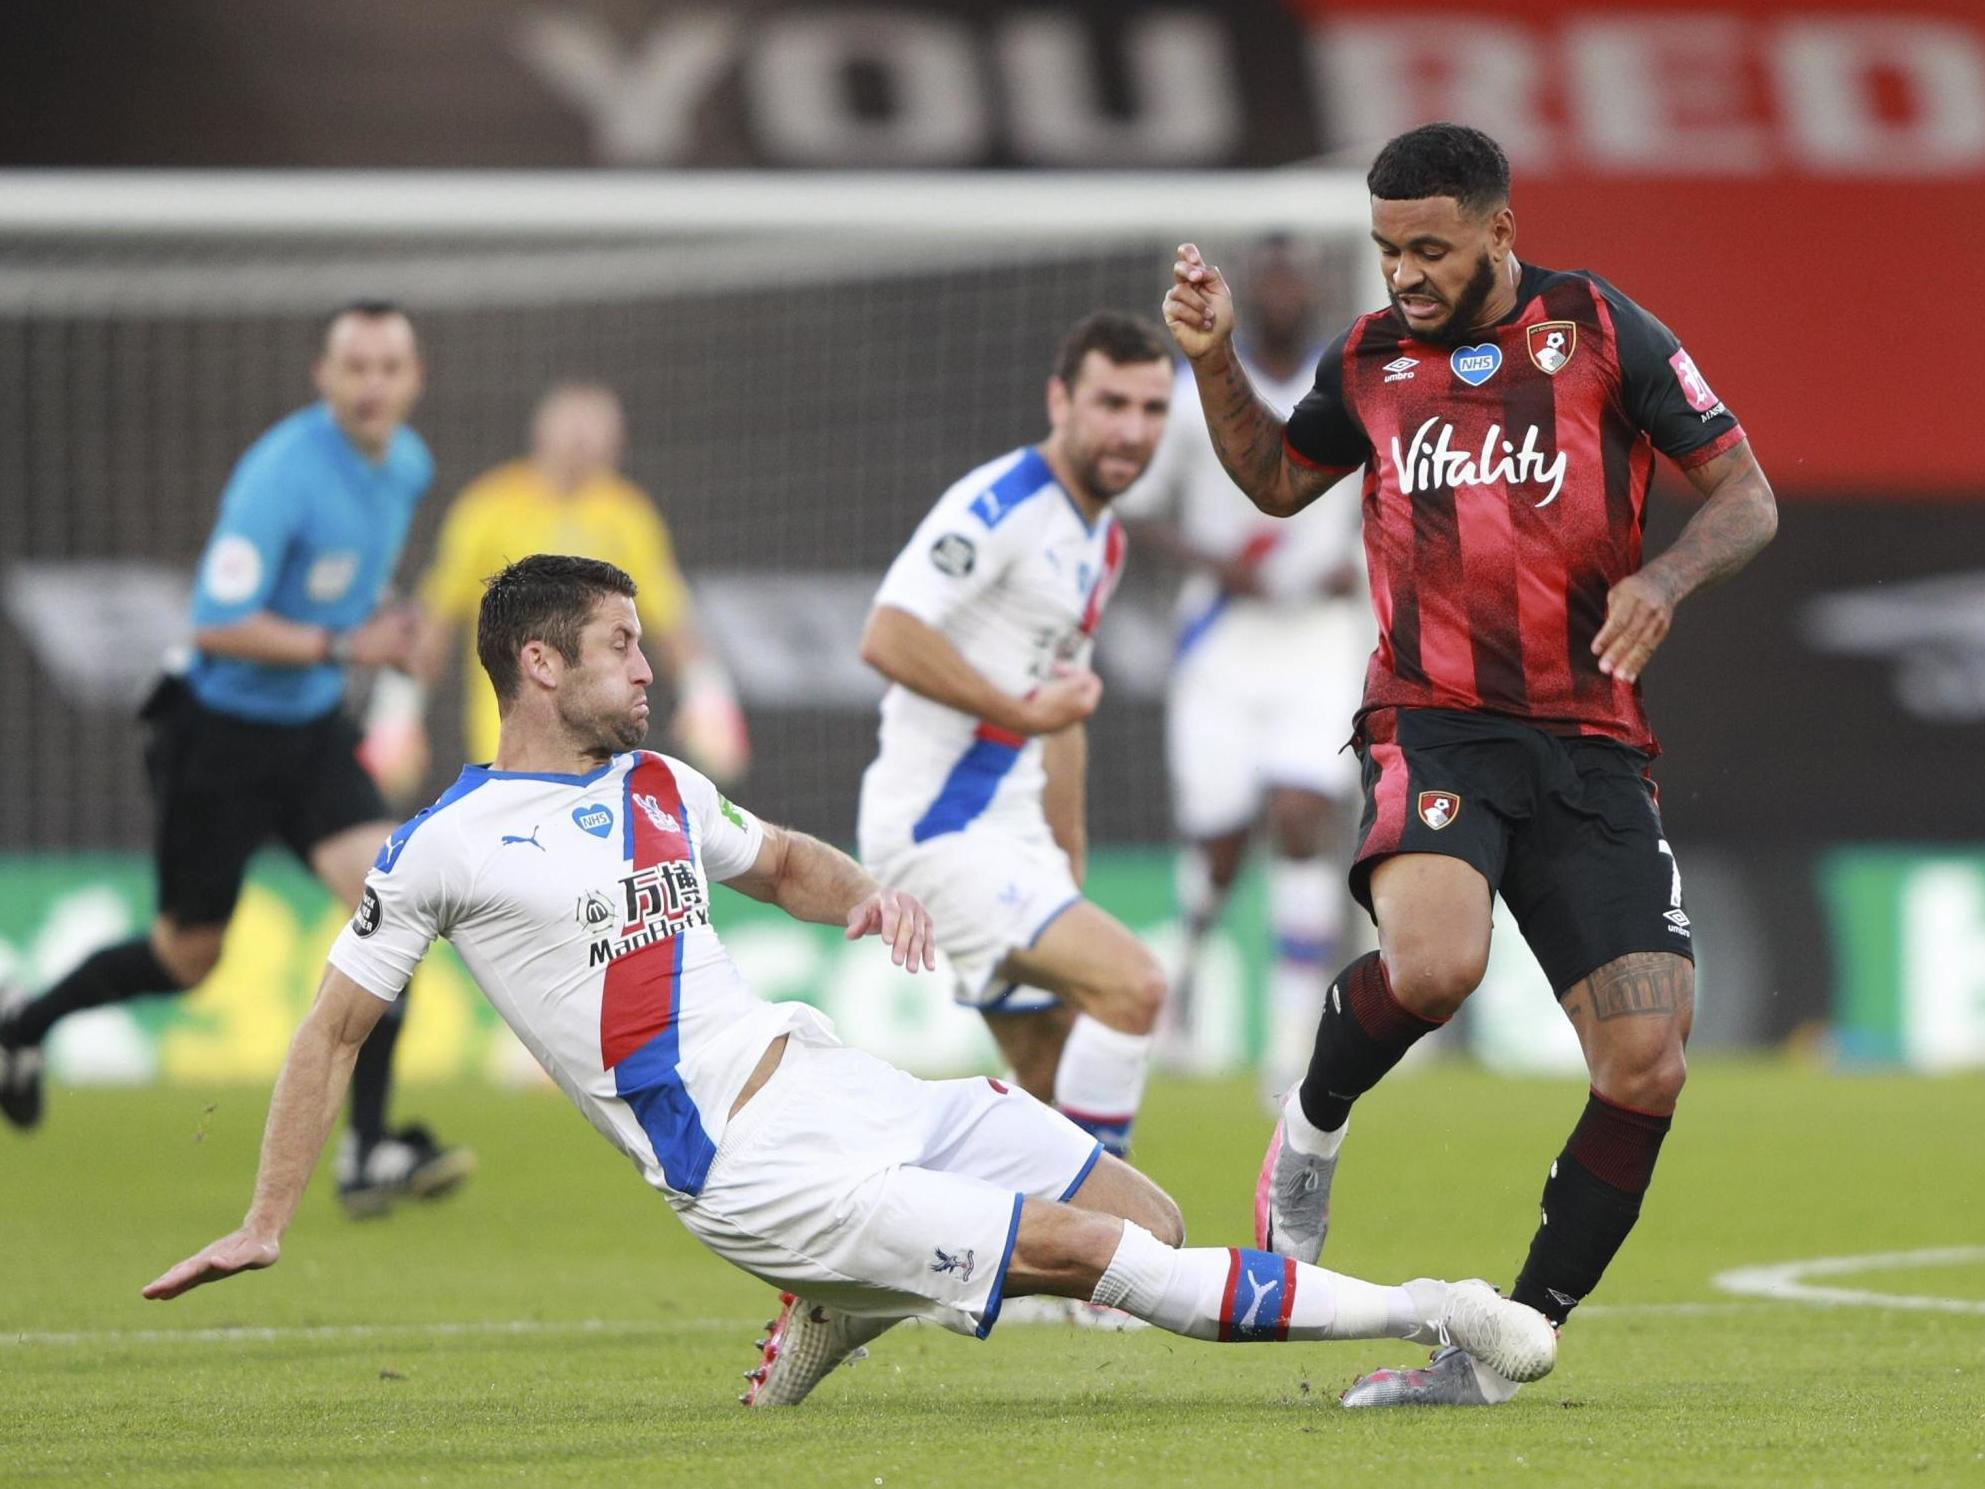 Bournemouth striker Joshua King escapes 'nasty injury' after Gary Cahill  tackle   The Independent   The Independent